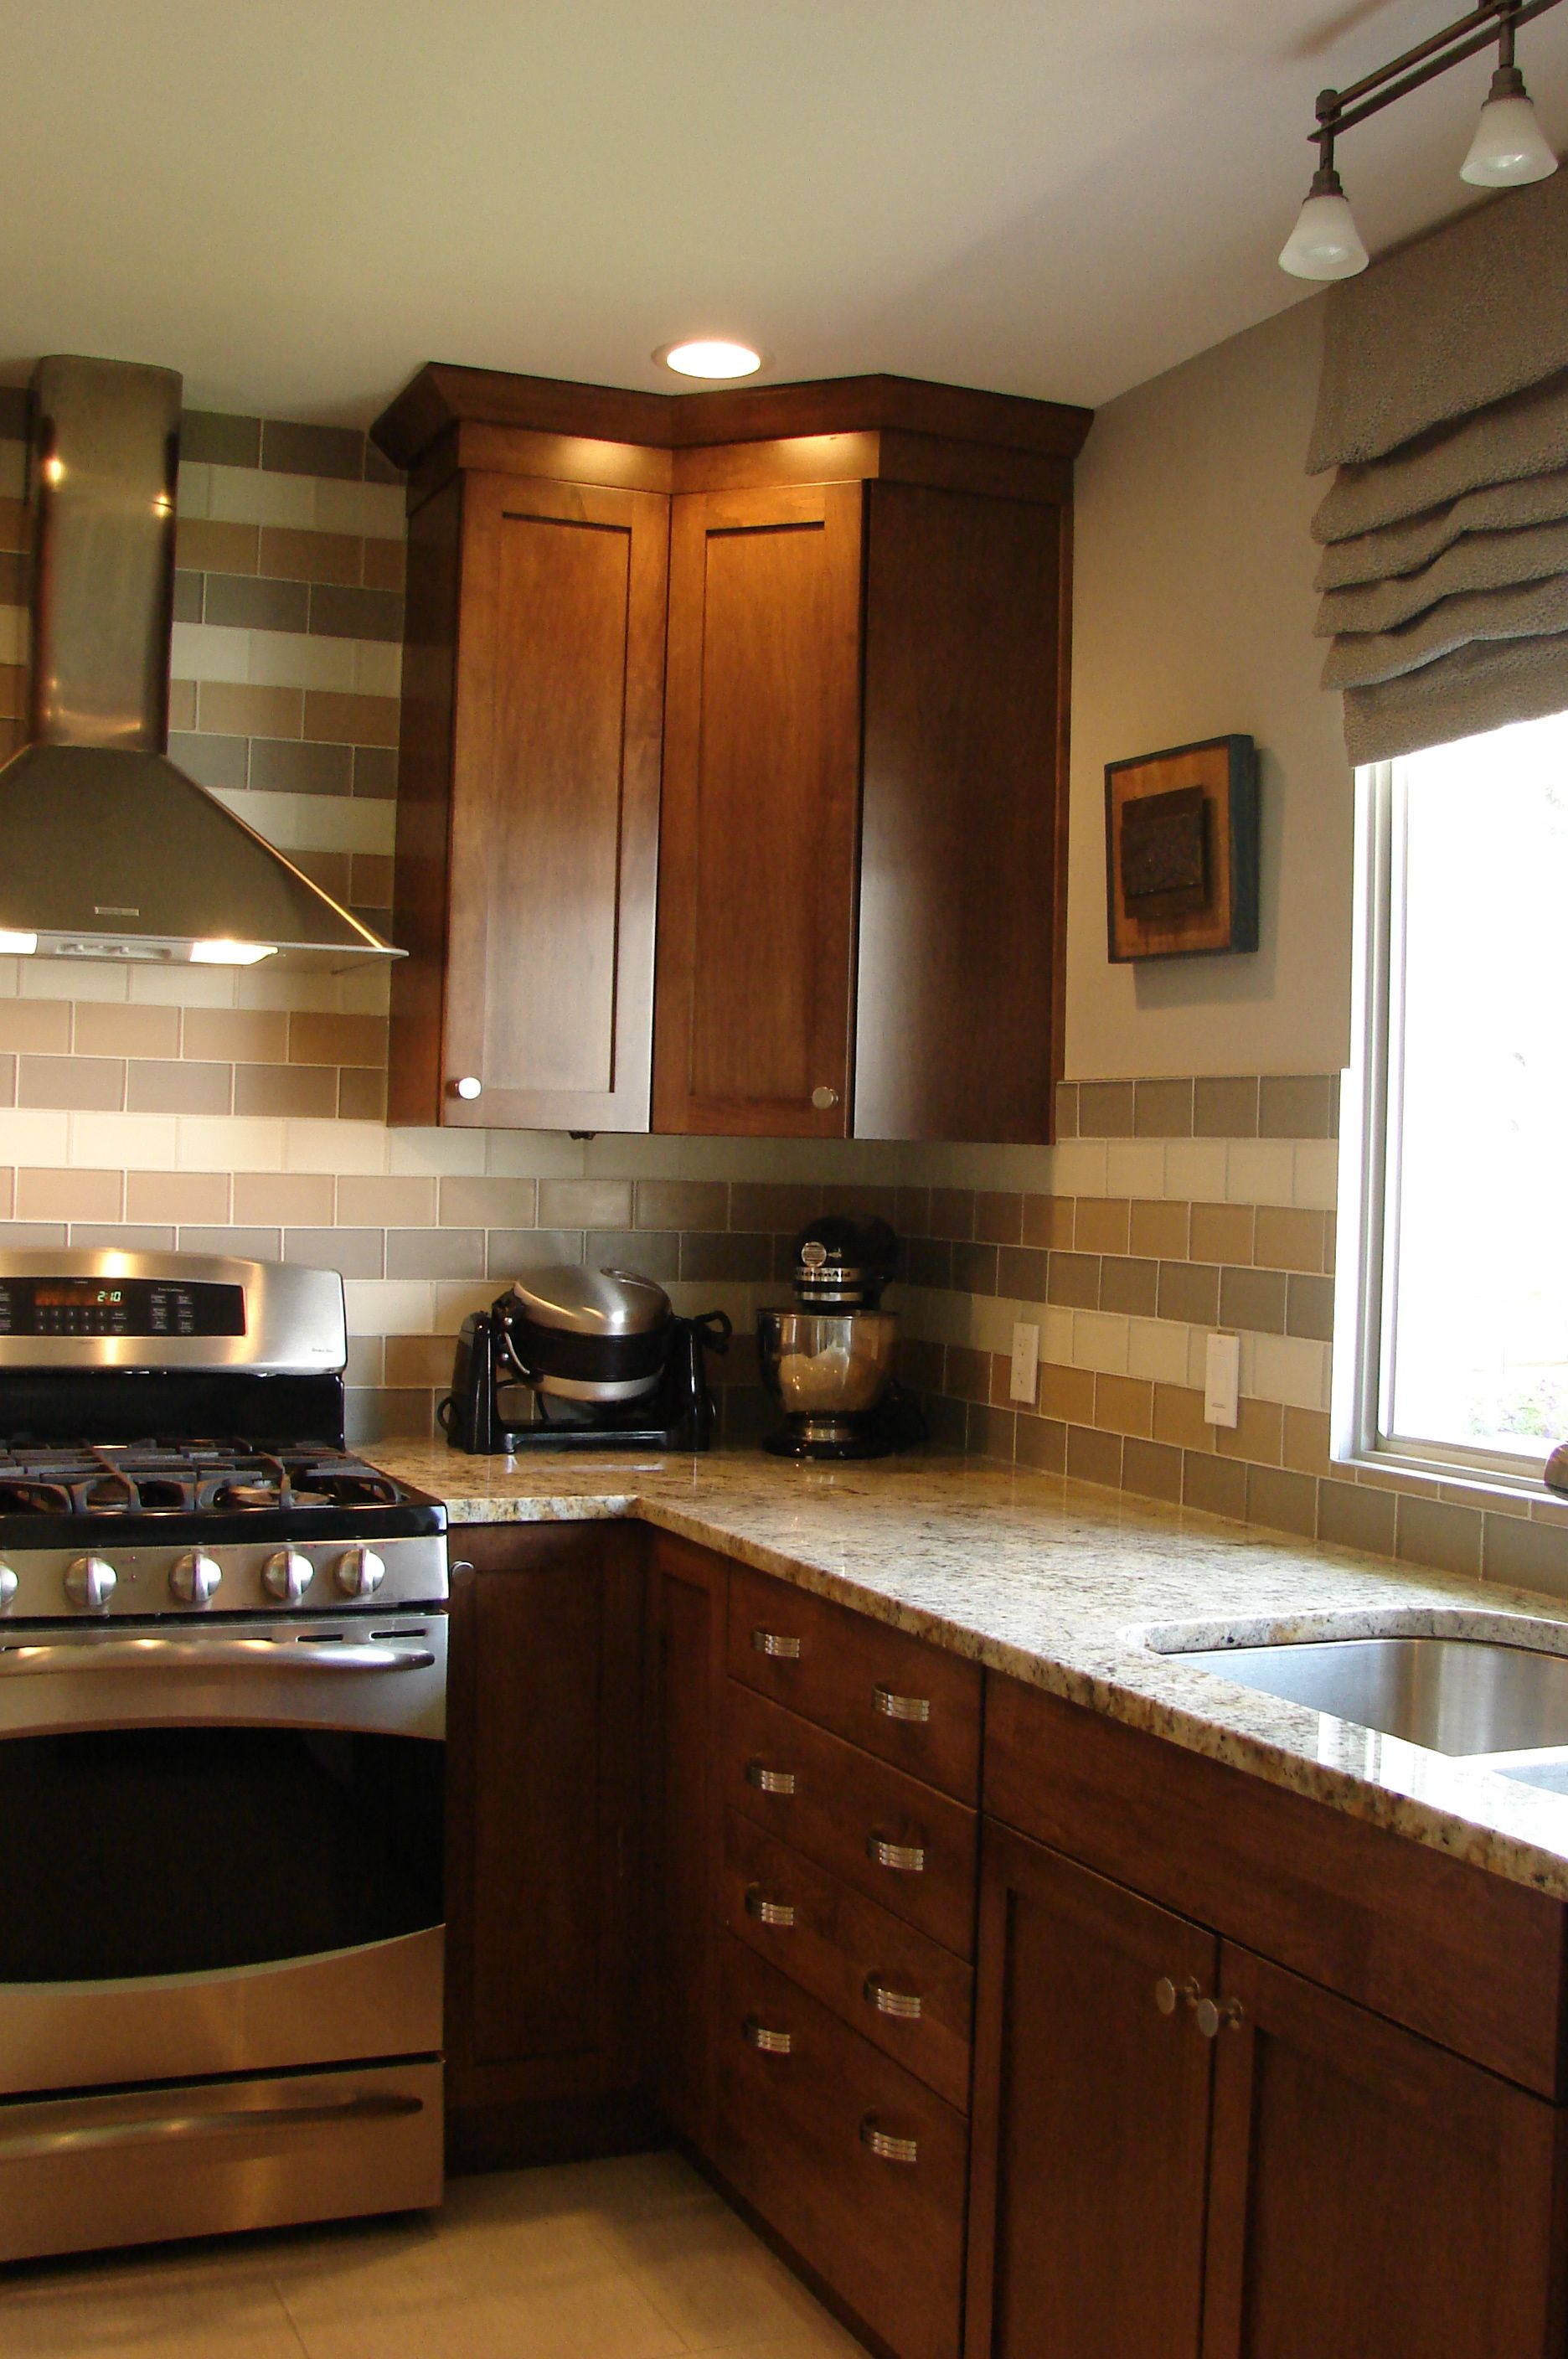 Brentwood Kitchen Renolike The Look Need Different Colors Kitchen Kitchen Remodel New Kitchen